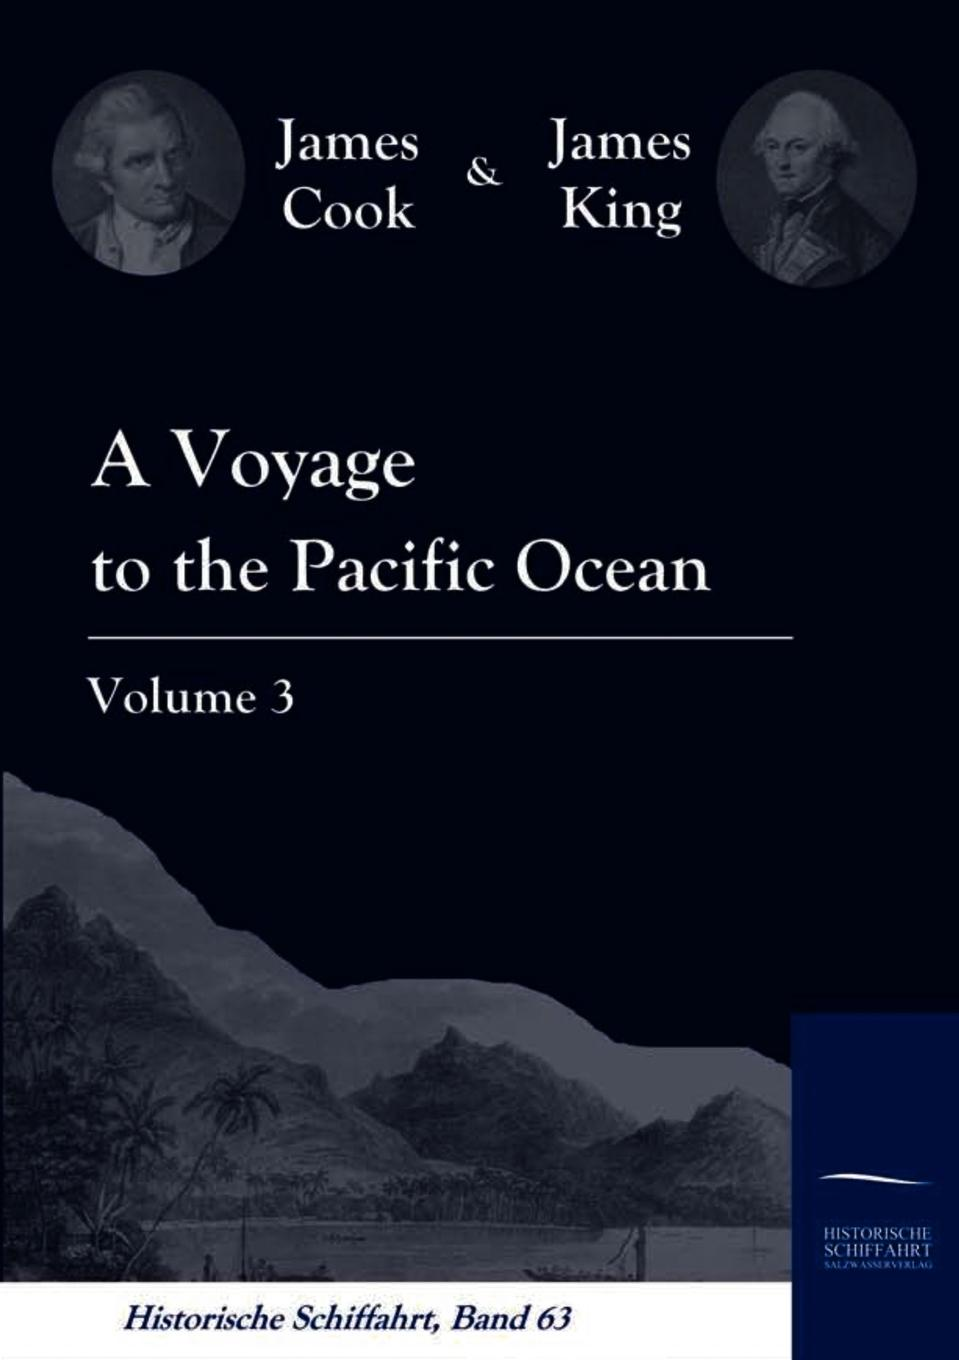 James Cook, James King A Voyage to the Pacific Ocean Vol. 3